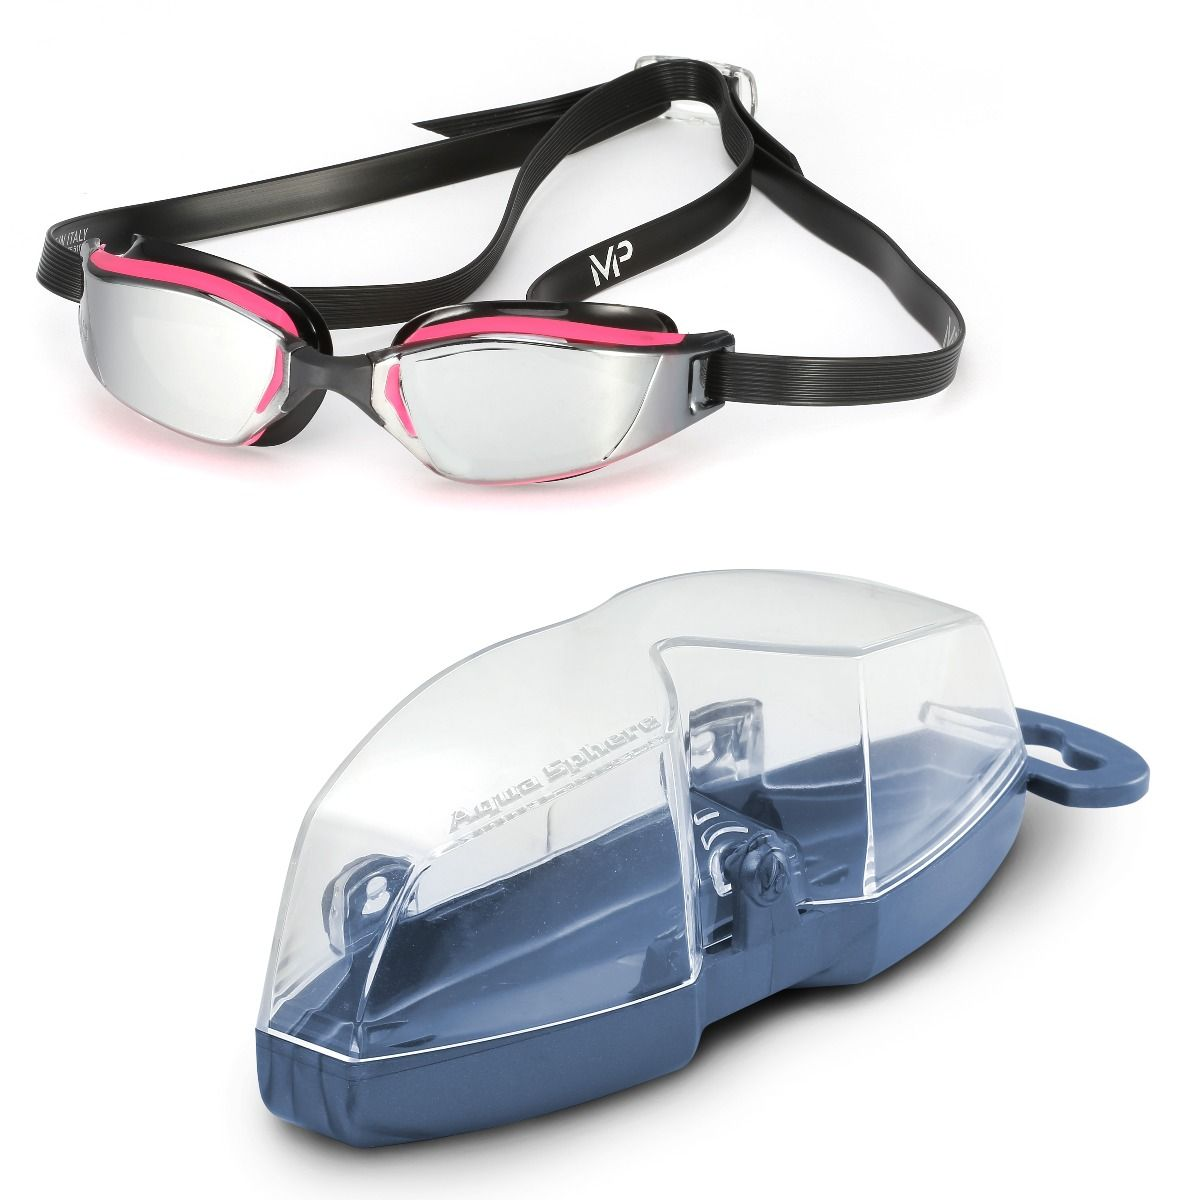 Michael Phelps Xceed Mirrored Lens Womens Swimming Goggles